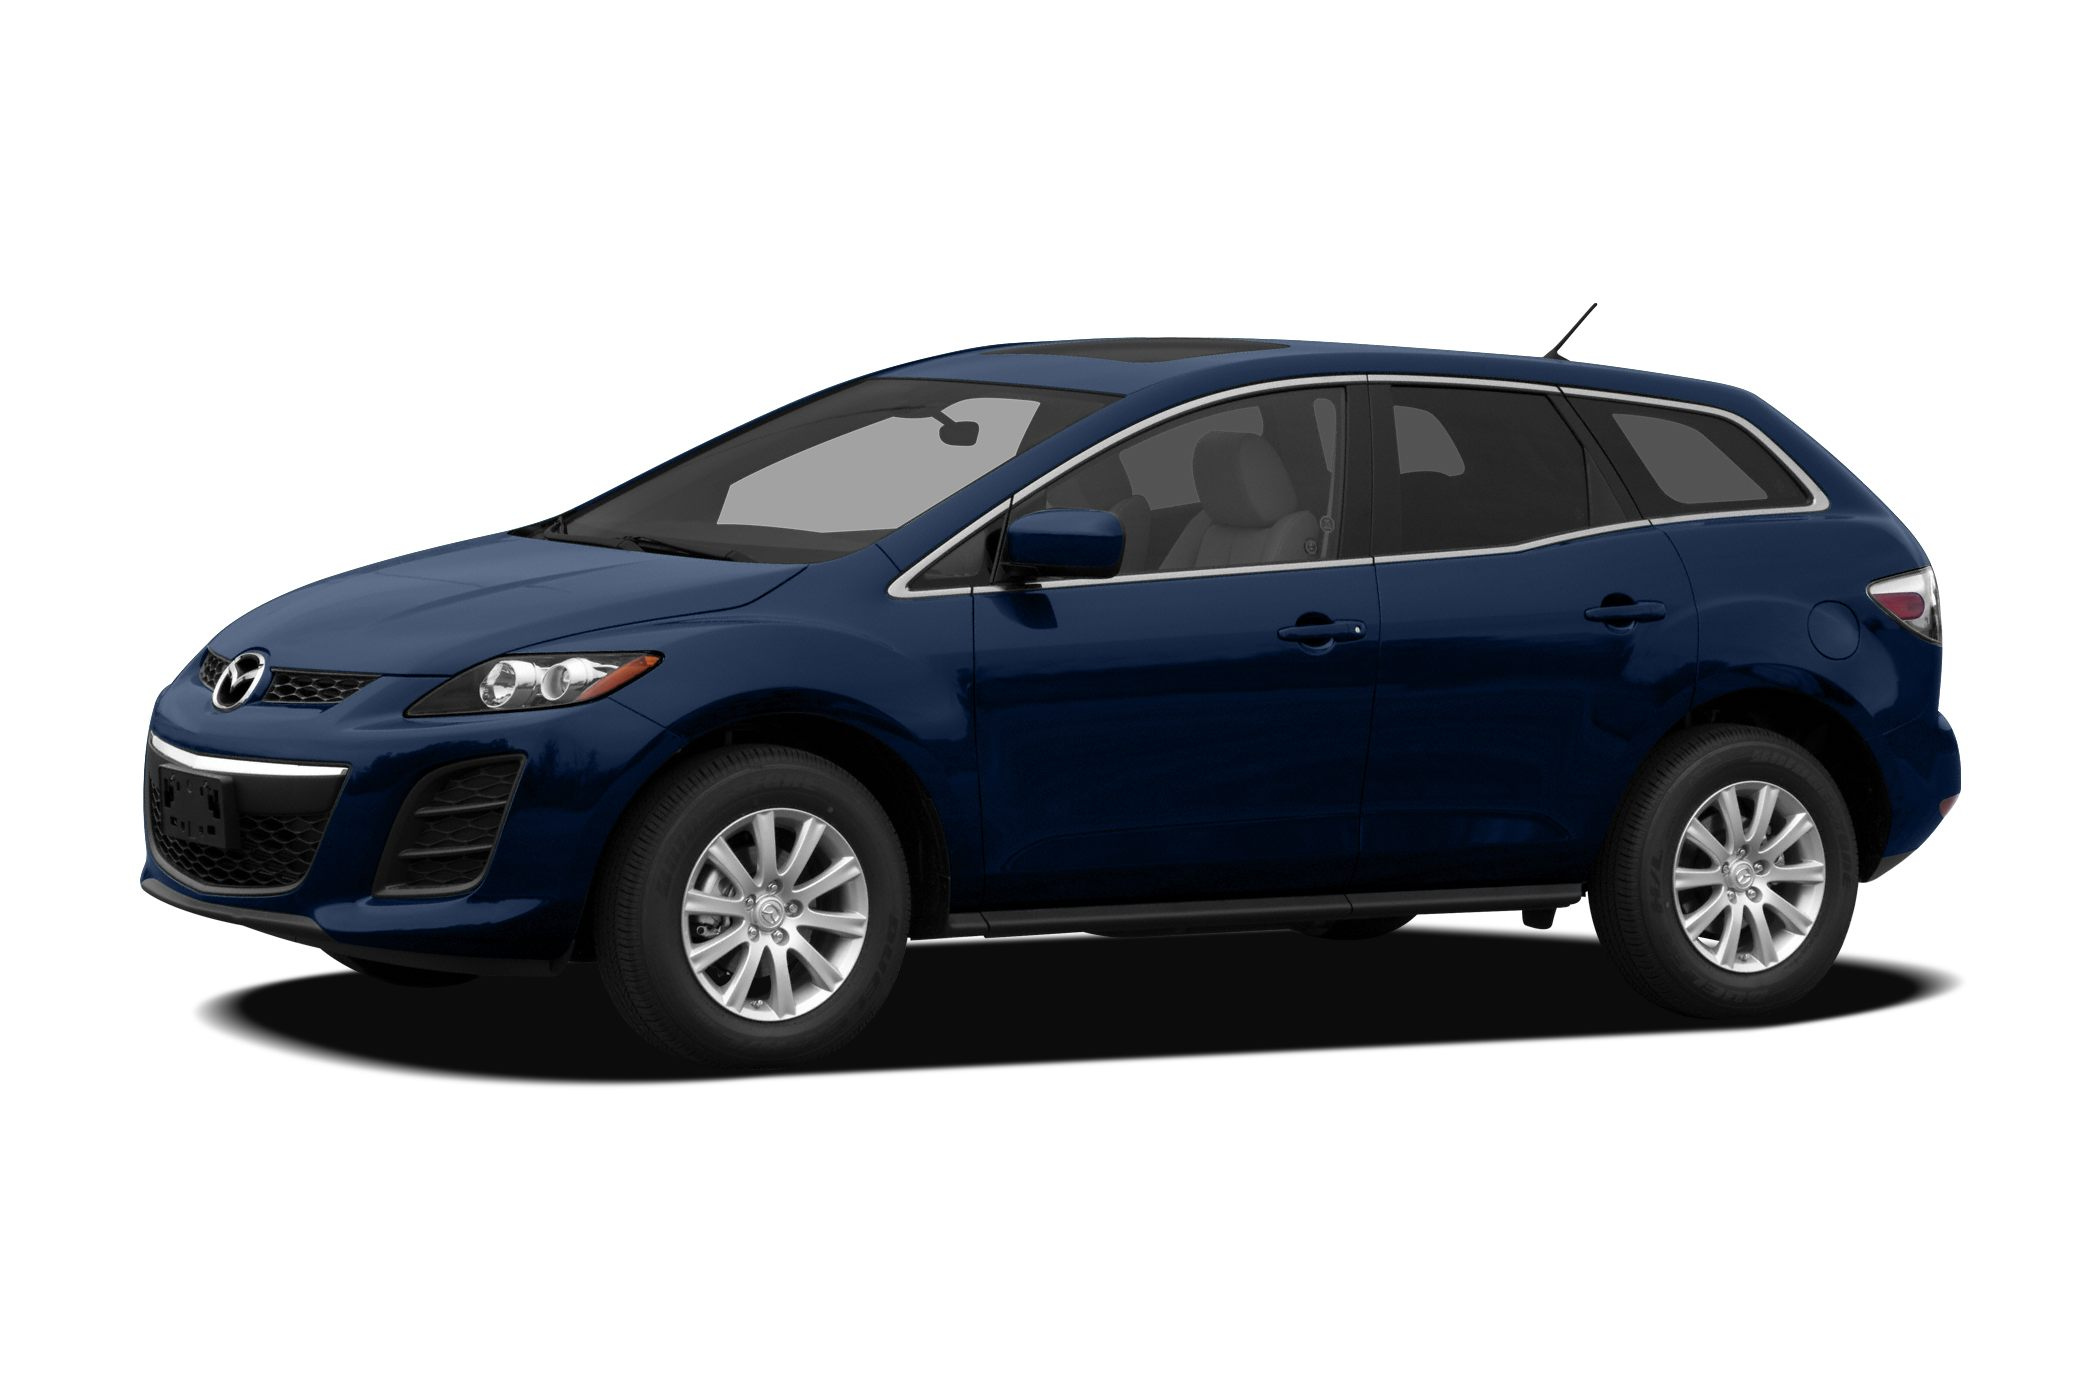 2010 Mazda CX-7 S Touring SUV for sale in Fullerton for $13,999 with 46,970 miles.